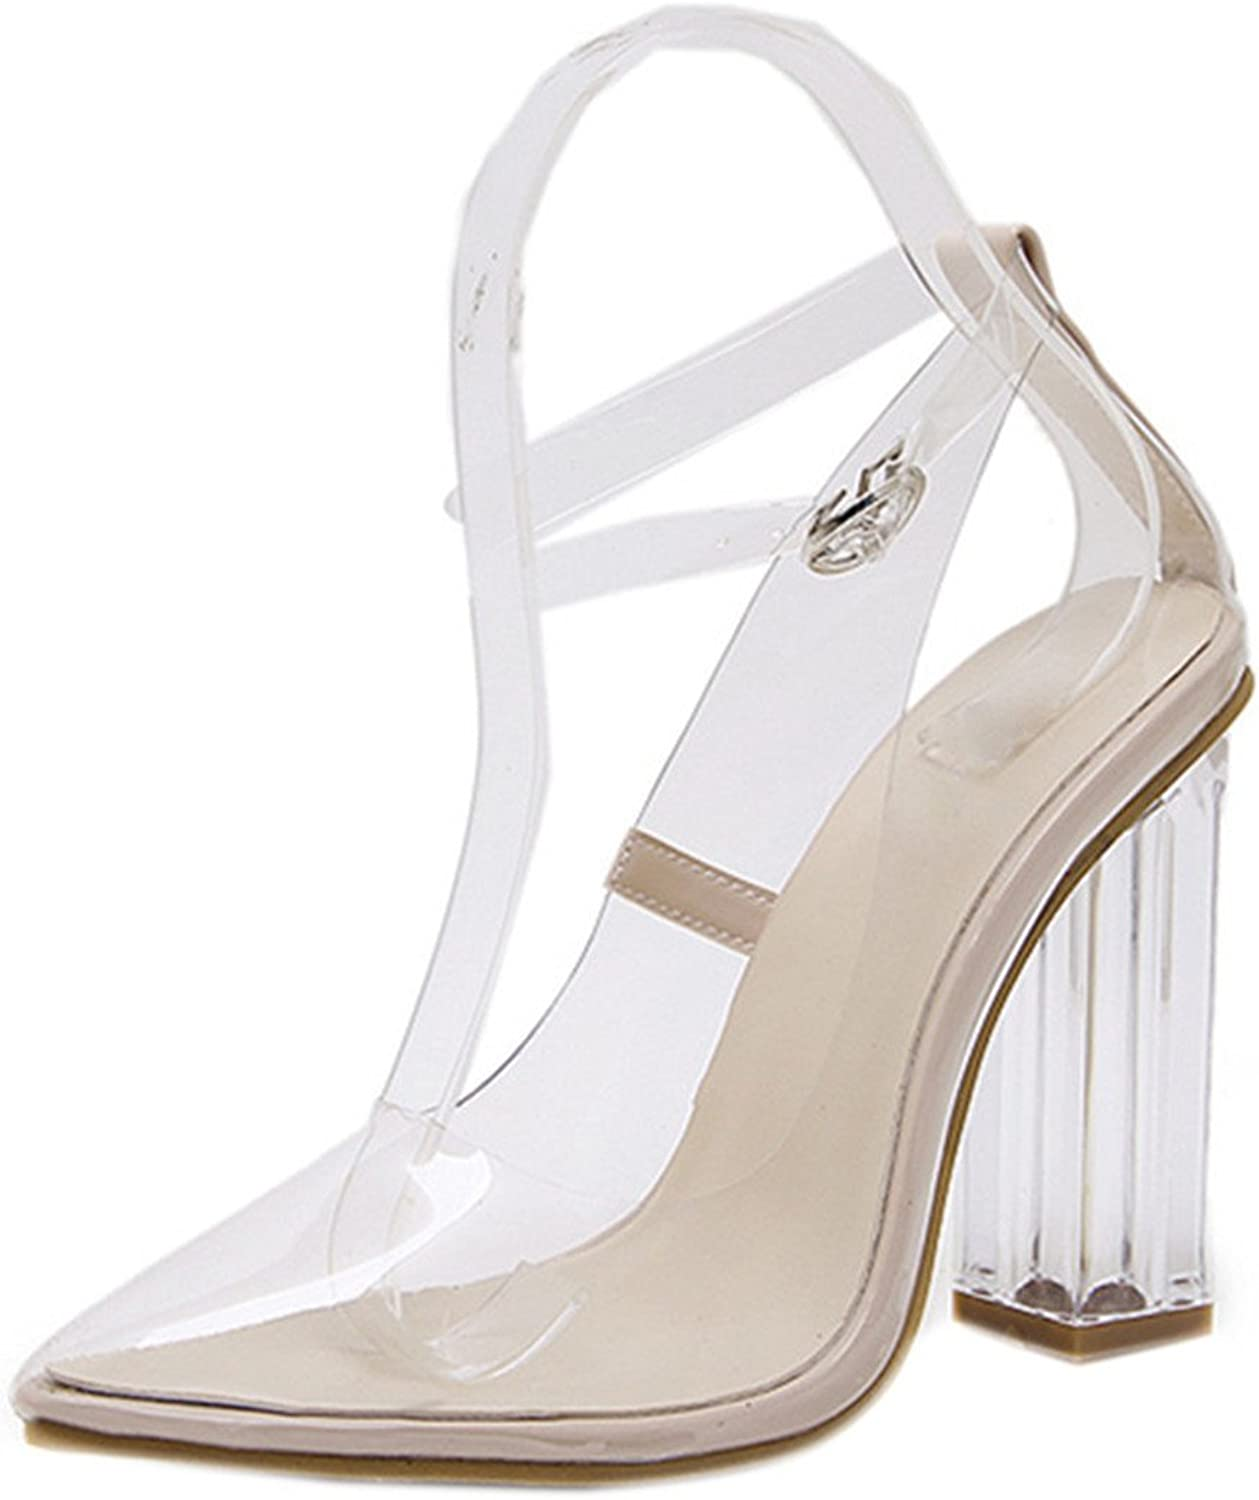 Anzhuangh High Heels shoes Woman New PVC Transparent Crystal Women Pumps Square Heel Pointed Toe Autumn Ladies shoes NL042